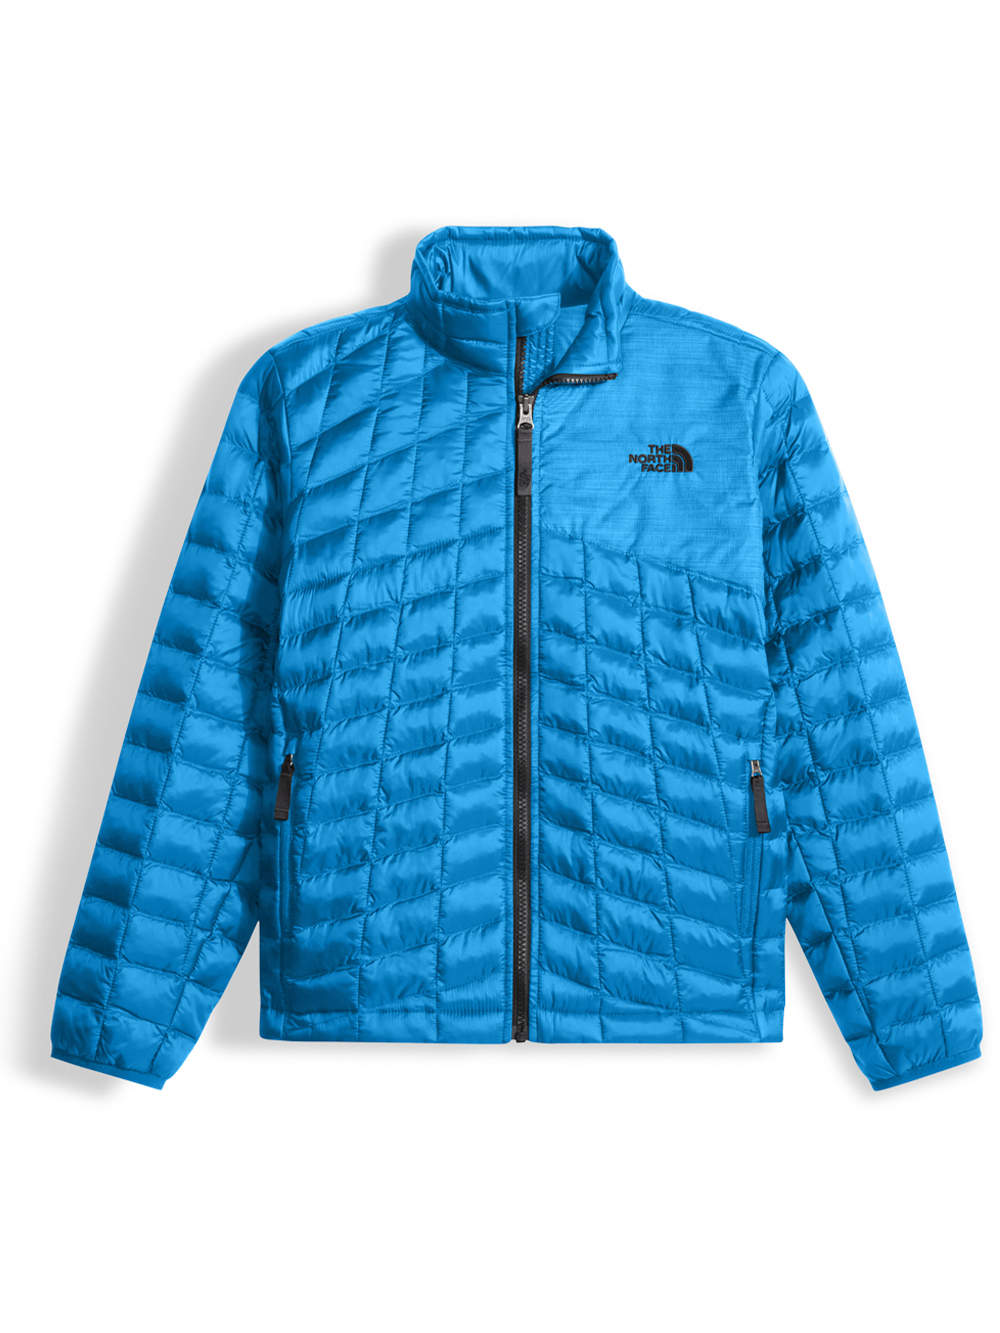 The North Face Big Boys' Thermoball Full Zip Jacket (Sizes S - XL) - clear lake blue, xl/18-20